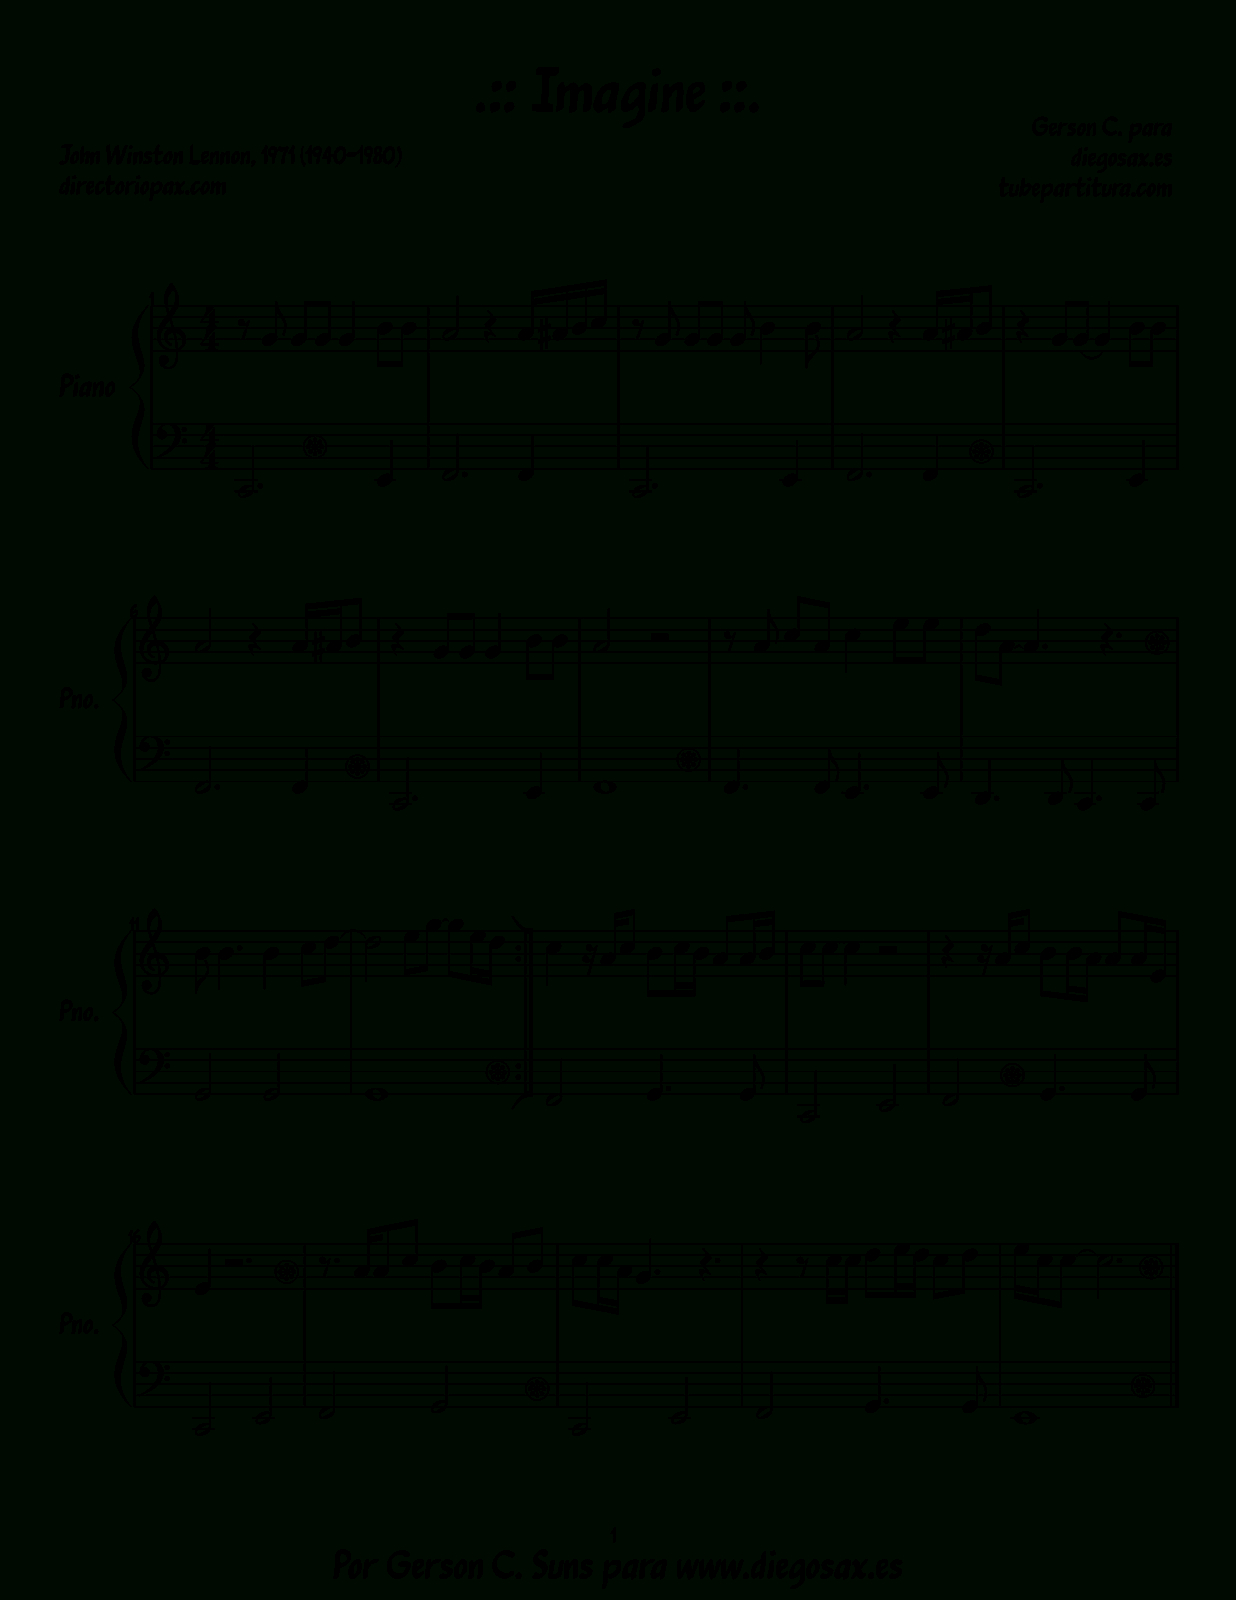 Easy Piano Sheet Music Popular Songs Background 1 Hd Wallpapers - Free Piano Sheet Music Online Printable Popular Songs